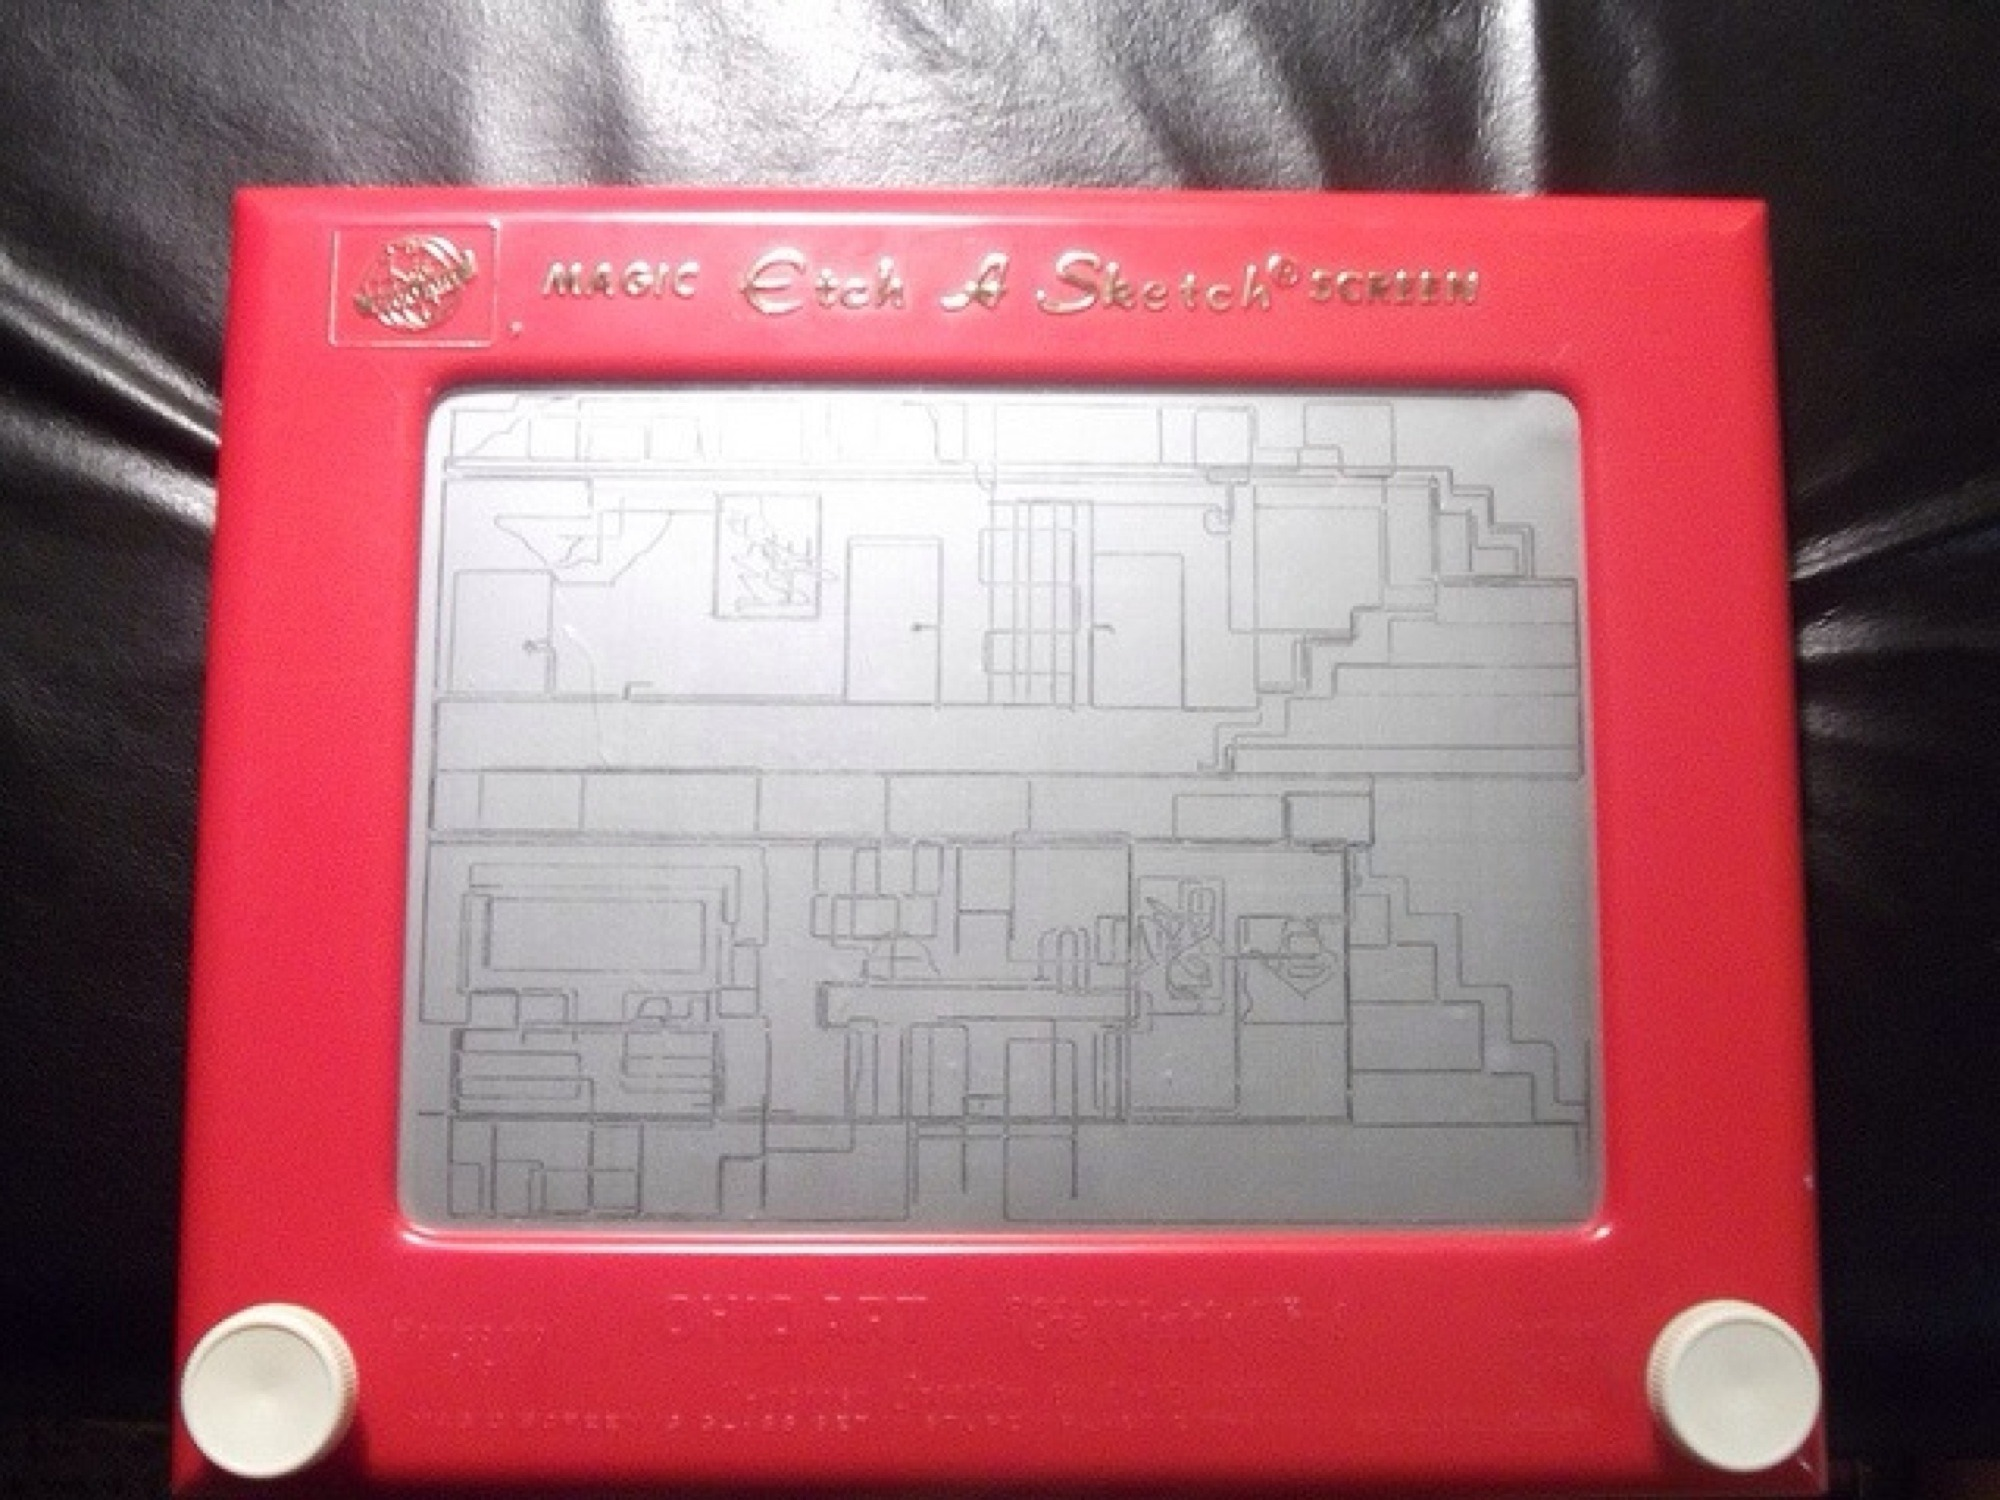 Interior design sketch on a etch a sketch